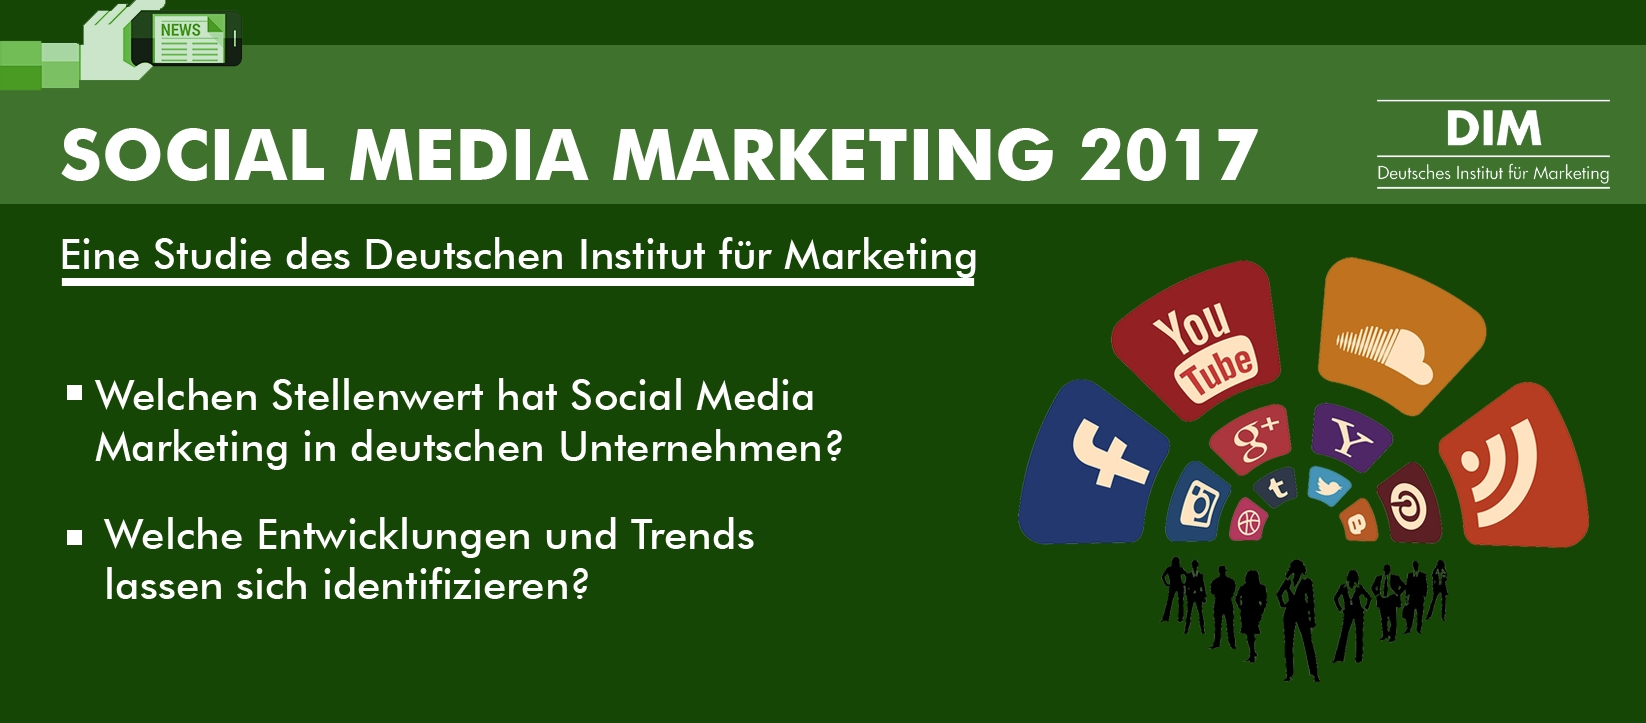 Social Media Marketing Studie 2017